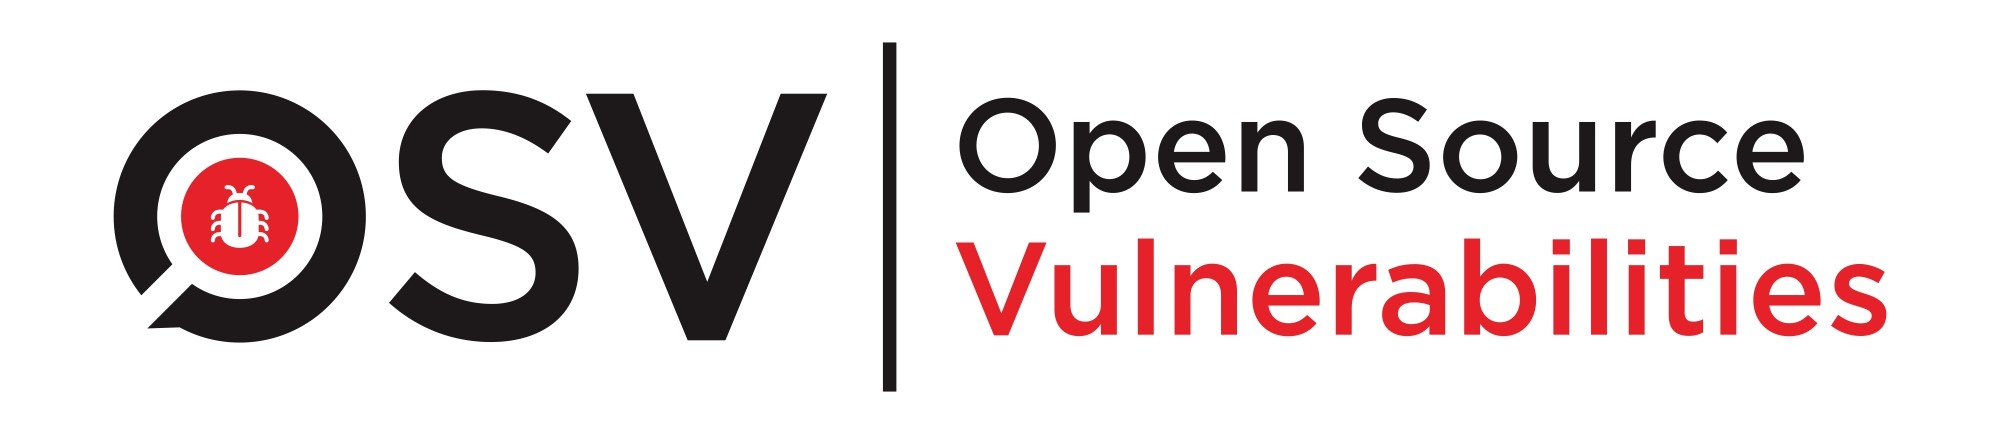 Google launches Open Source Vulnerabilities (OSV) database